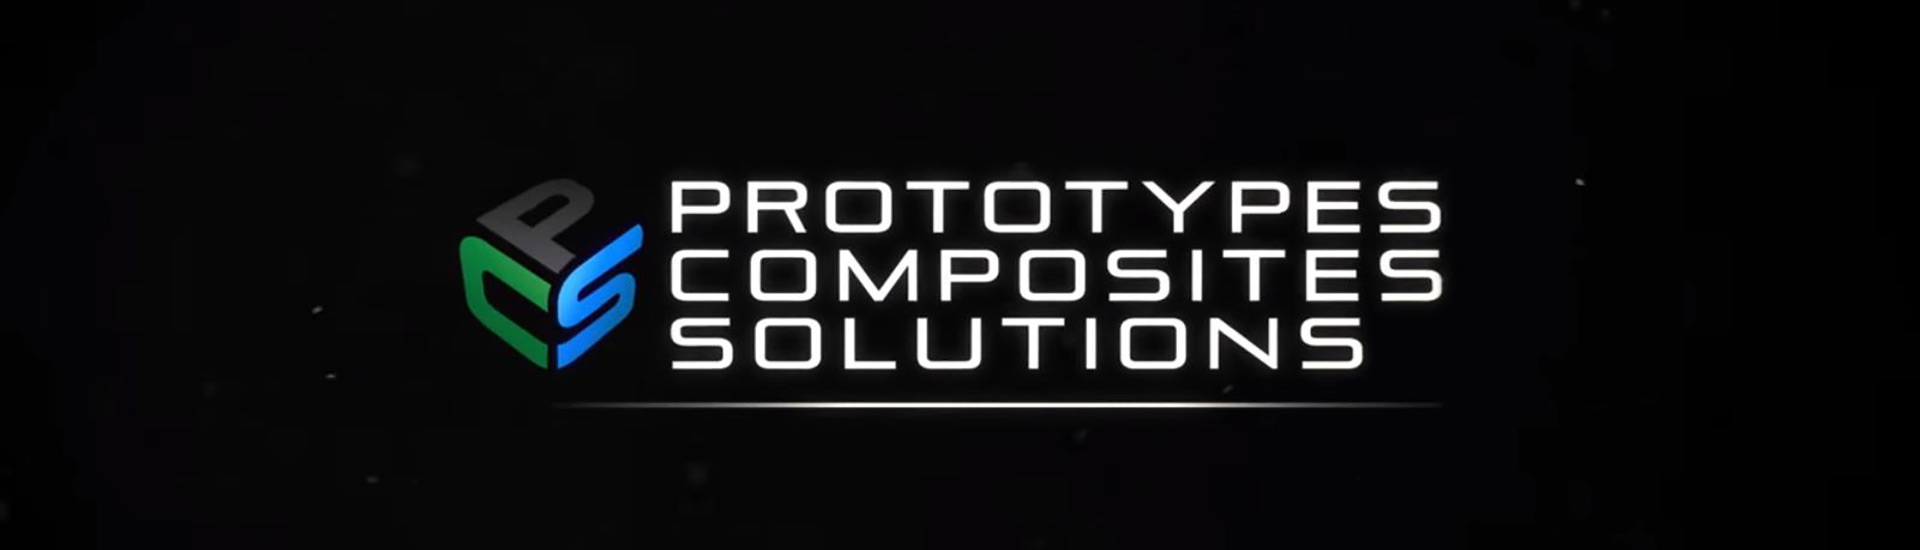 Logo prototypes composites solutions 2016